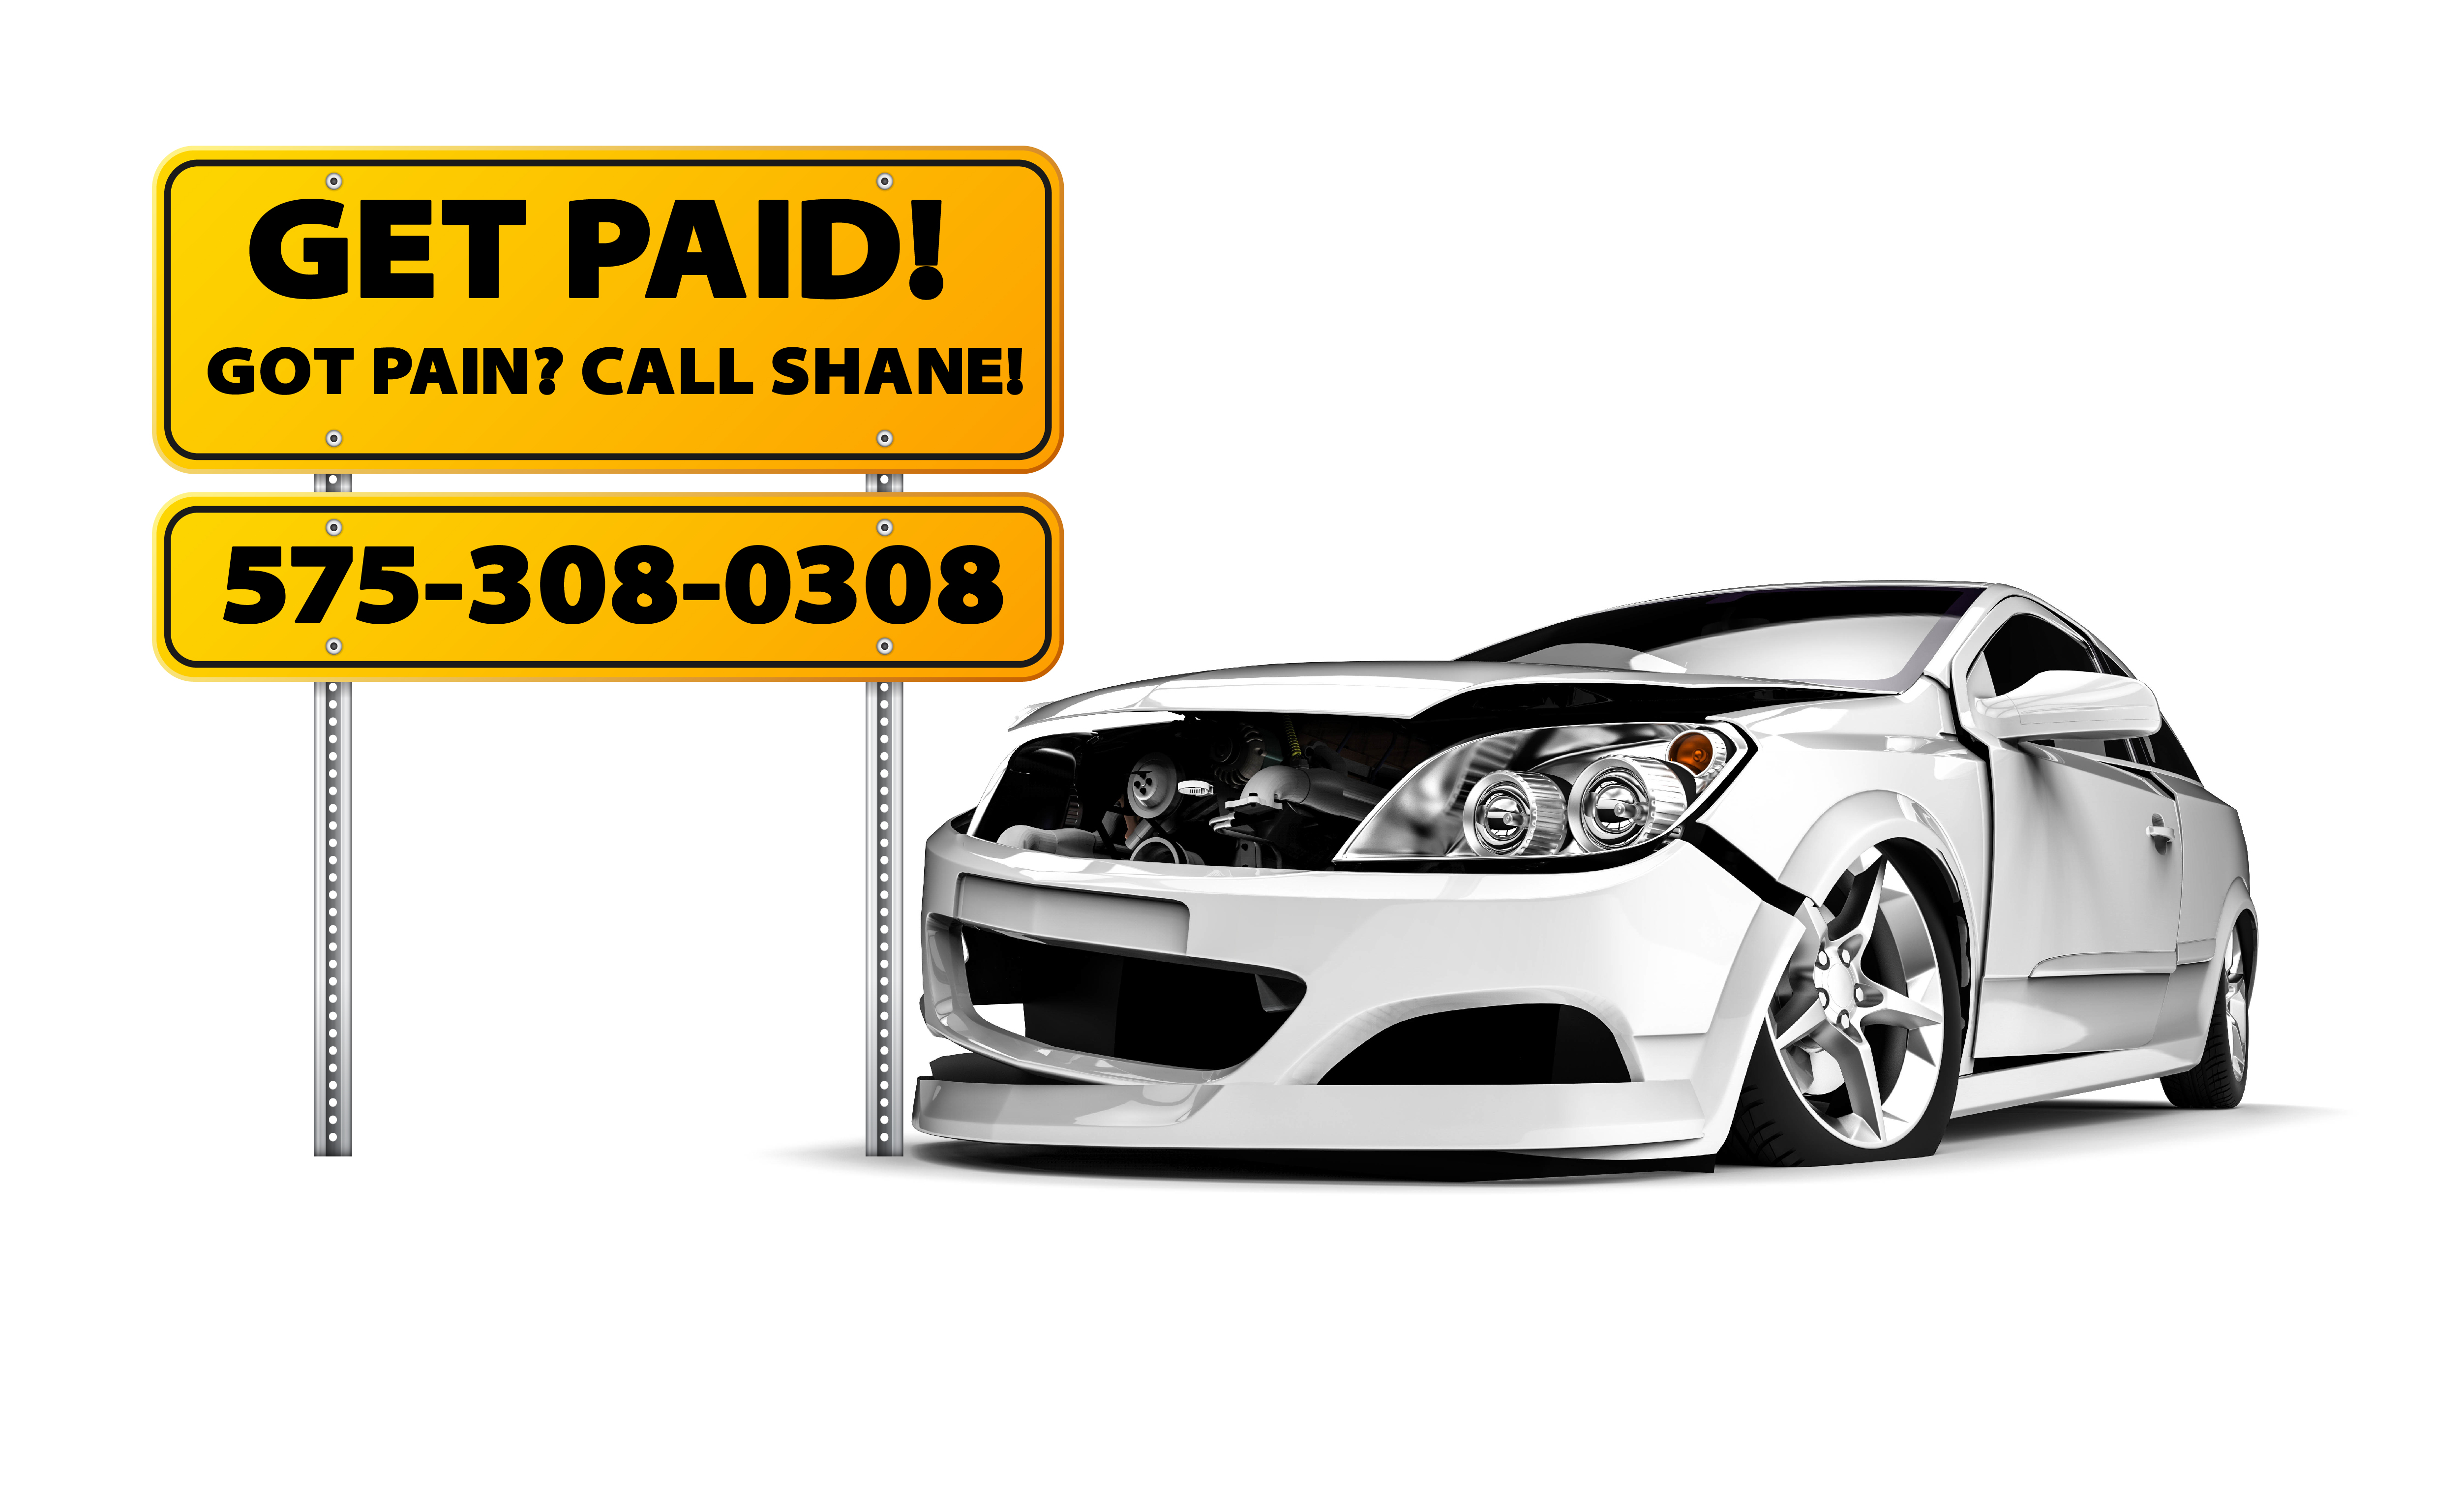 Reasons To Hire Lawyer After Car Accident